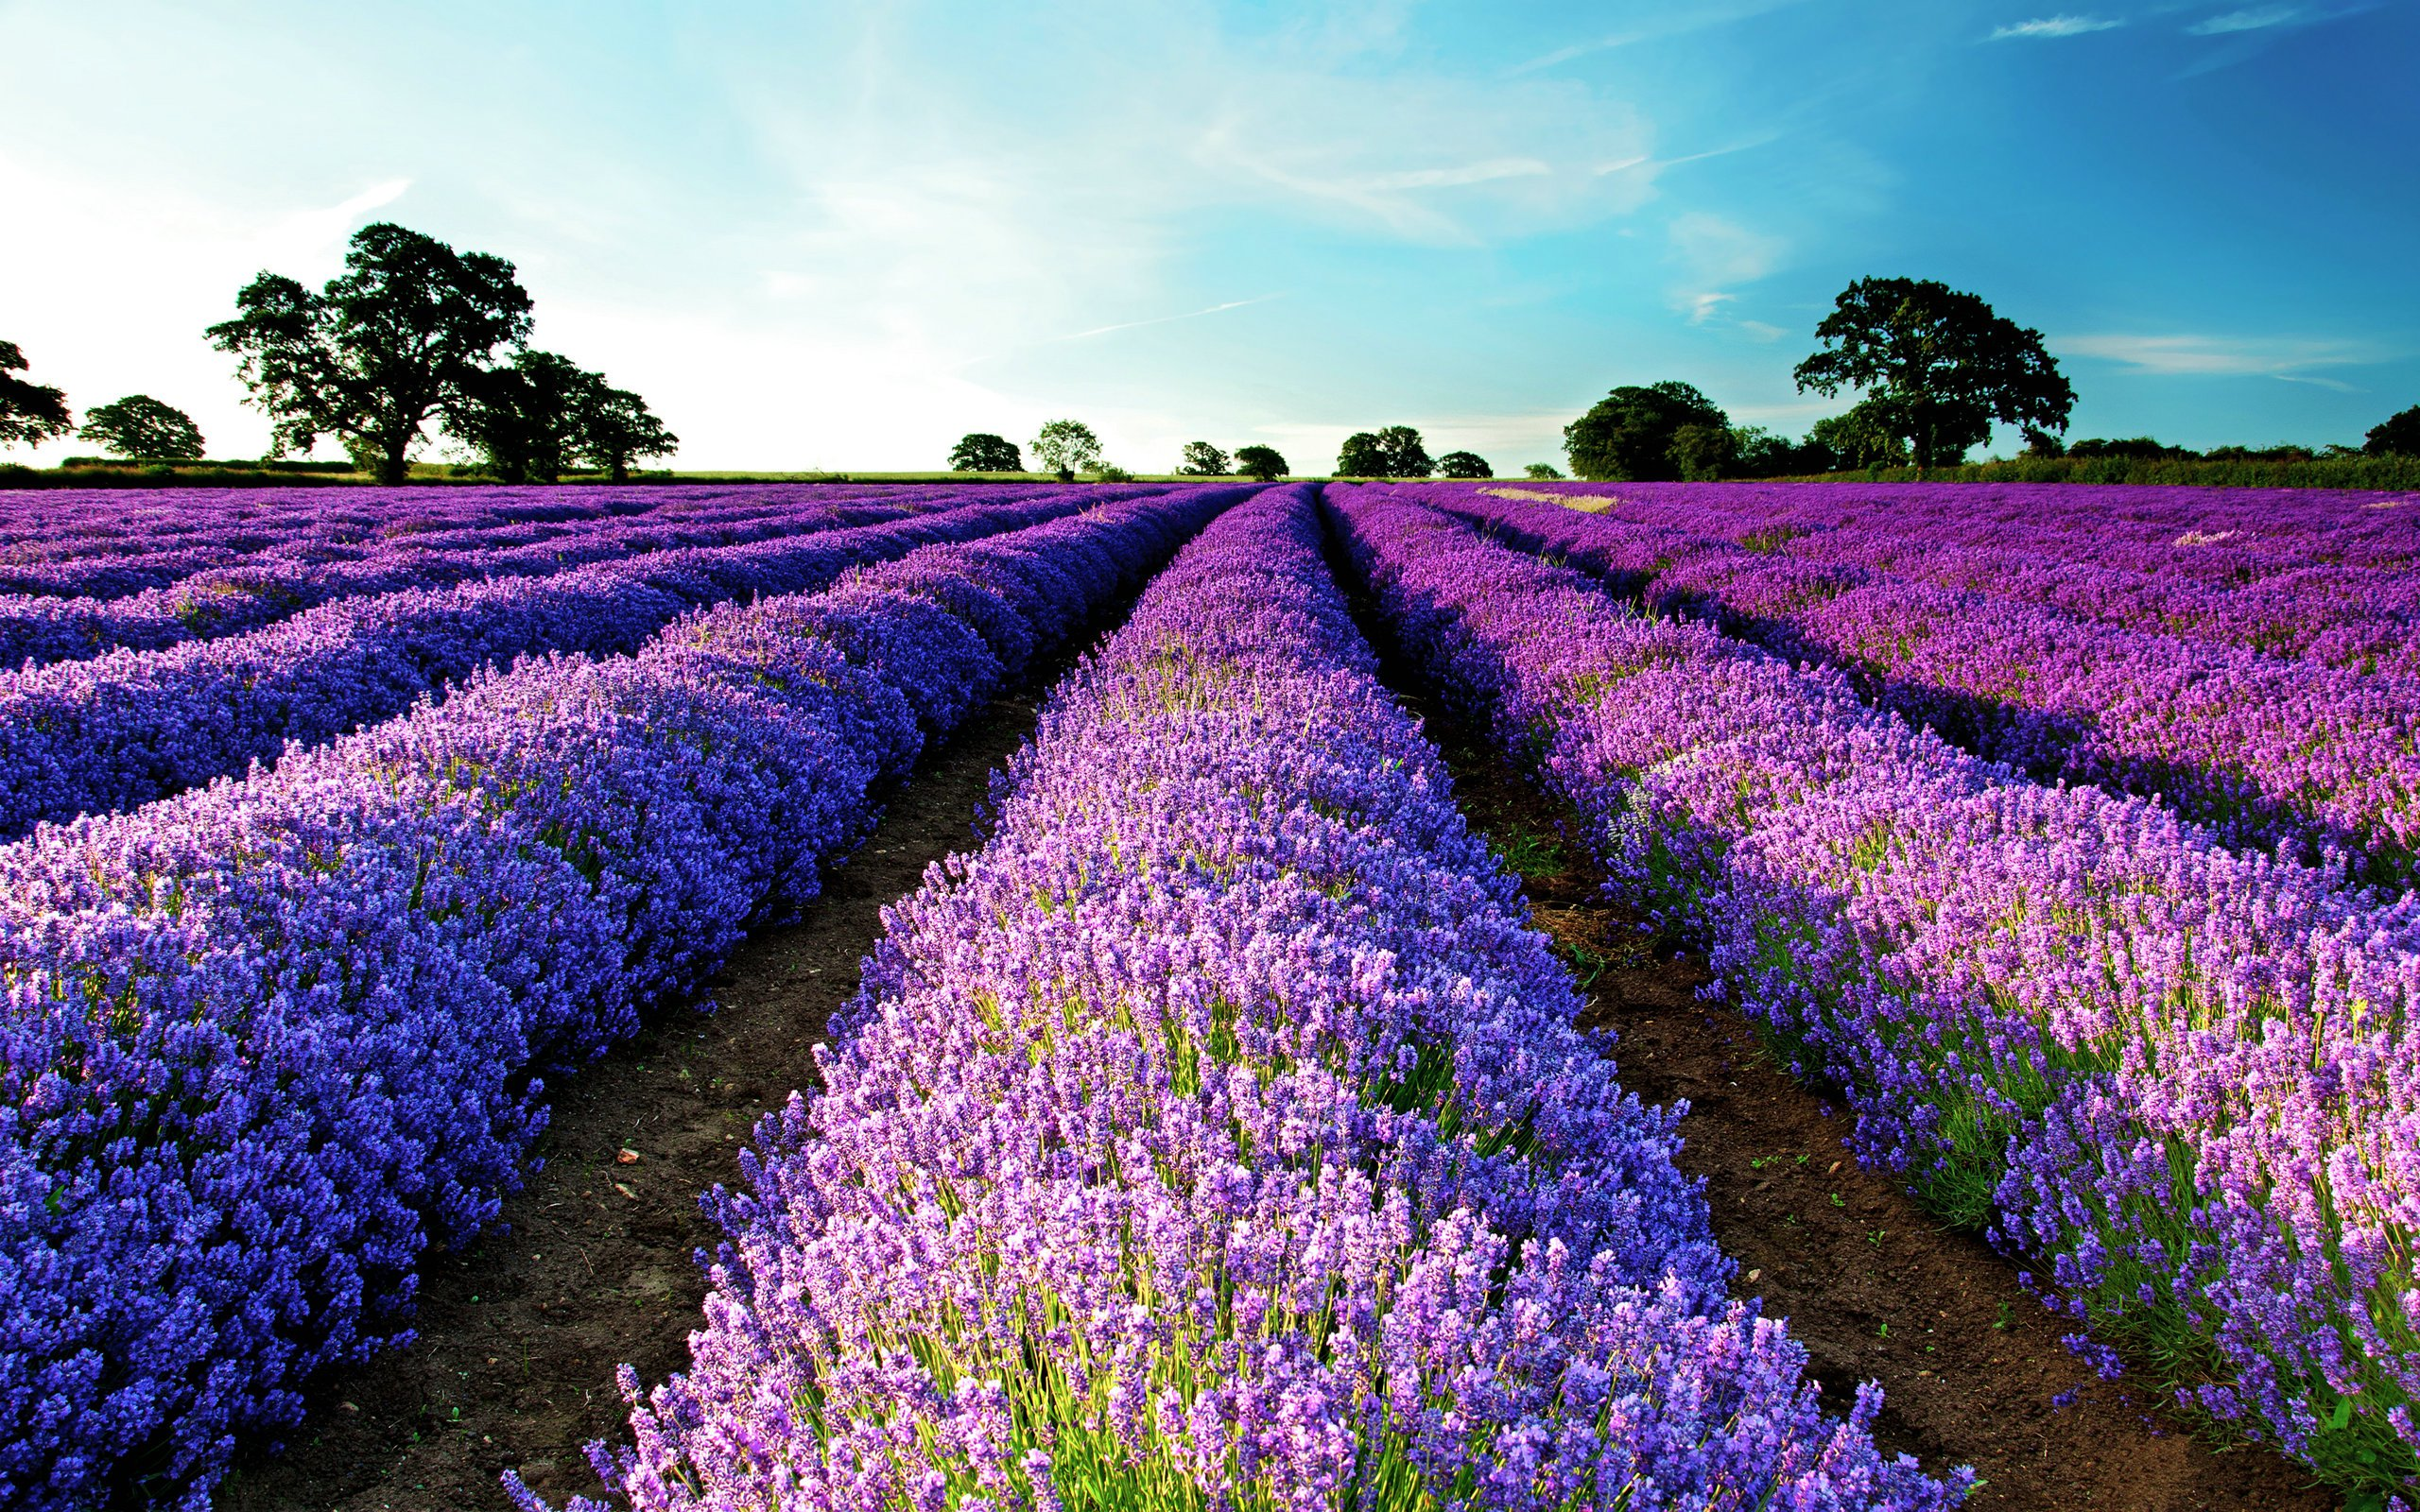 Lavender Field   Wallpaper High Definition High Quality Widescreen 2560x1600